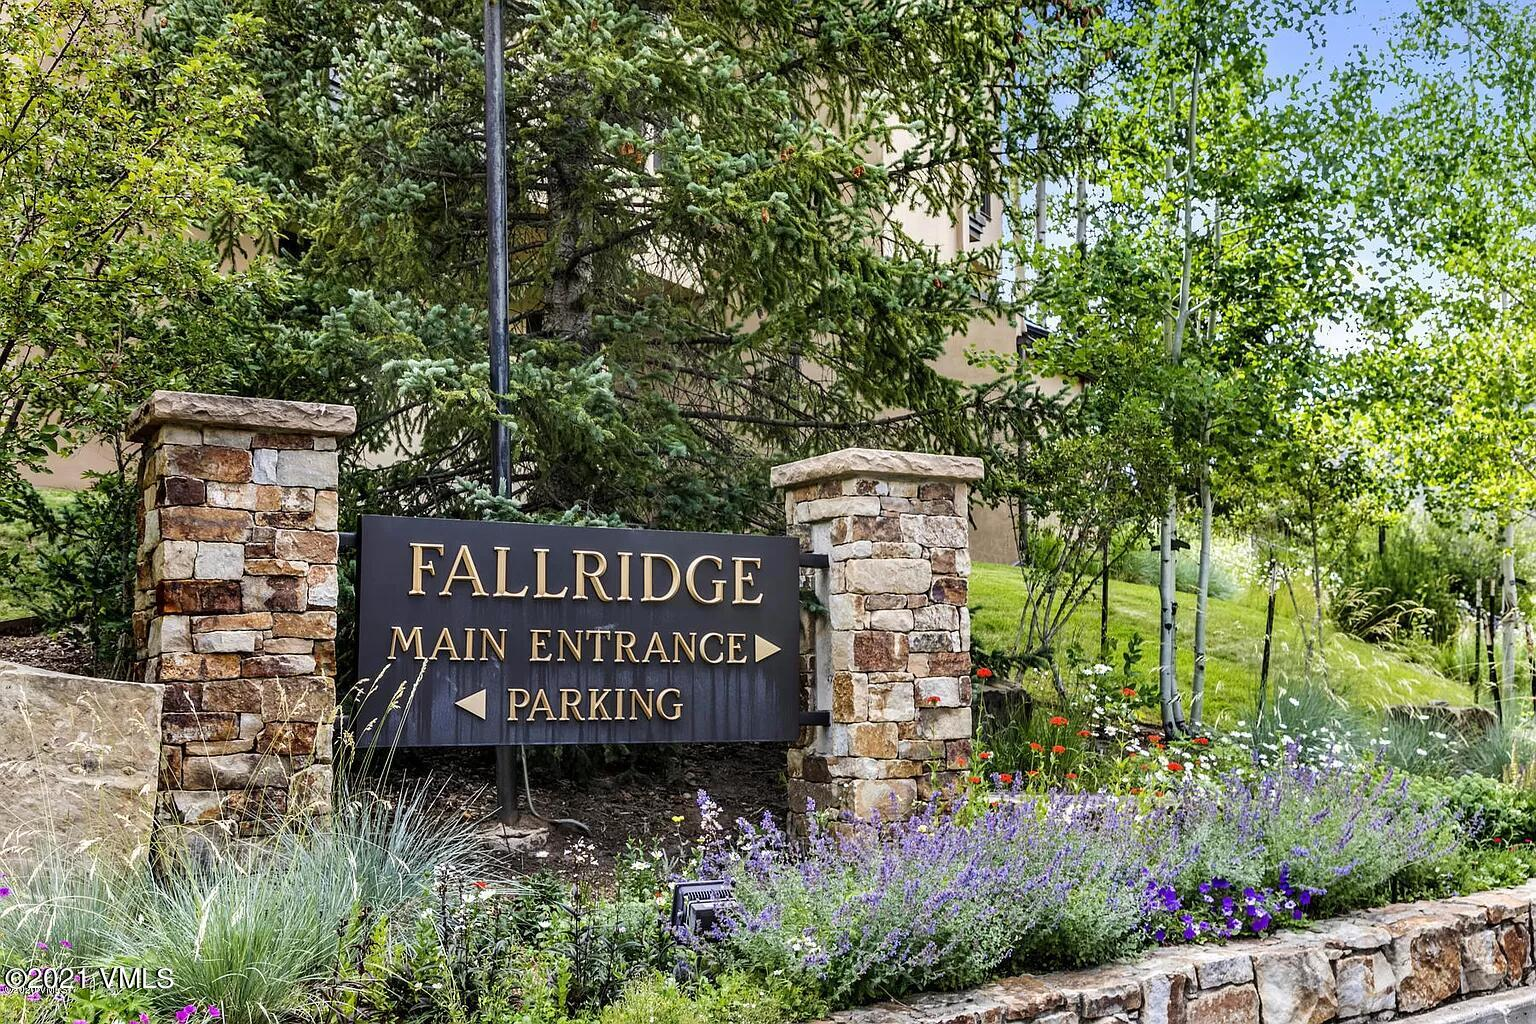 Fallridge is conveniently located on the Vail Golf Course only 1 1/4 Miles from the heart of Vail Village with just a short walk to the Club House, Nordic Center,  and free Town of Vail Bus Stop. The building offers  efficient and friendly management and front desk services, convenient in house parking, elevators,  in-house hot tub, and outdoor summer pool in a beautiful setting with Gore Range views.The condominium is located on the first floor and views the picturesque island in front of the building.The condominium can be used as two units, a lock-off bedroom with bath and a one bedroom apartment. Both have access to a spacious deck. The seller wishes to close after January 2nd.